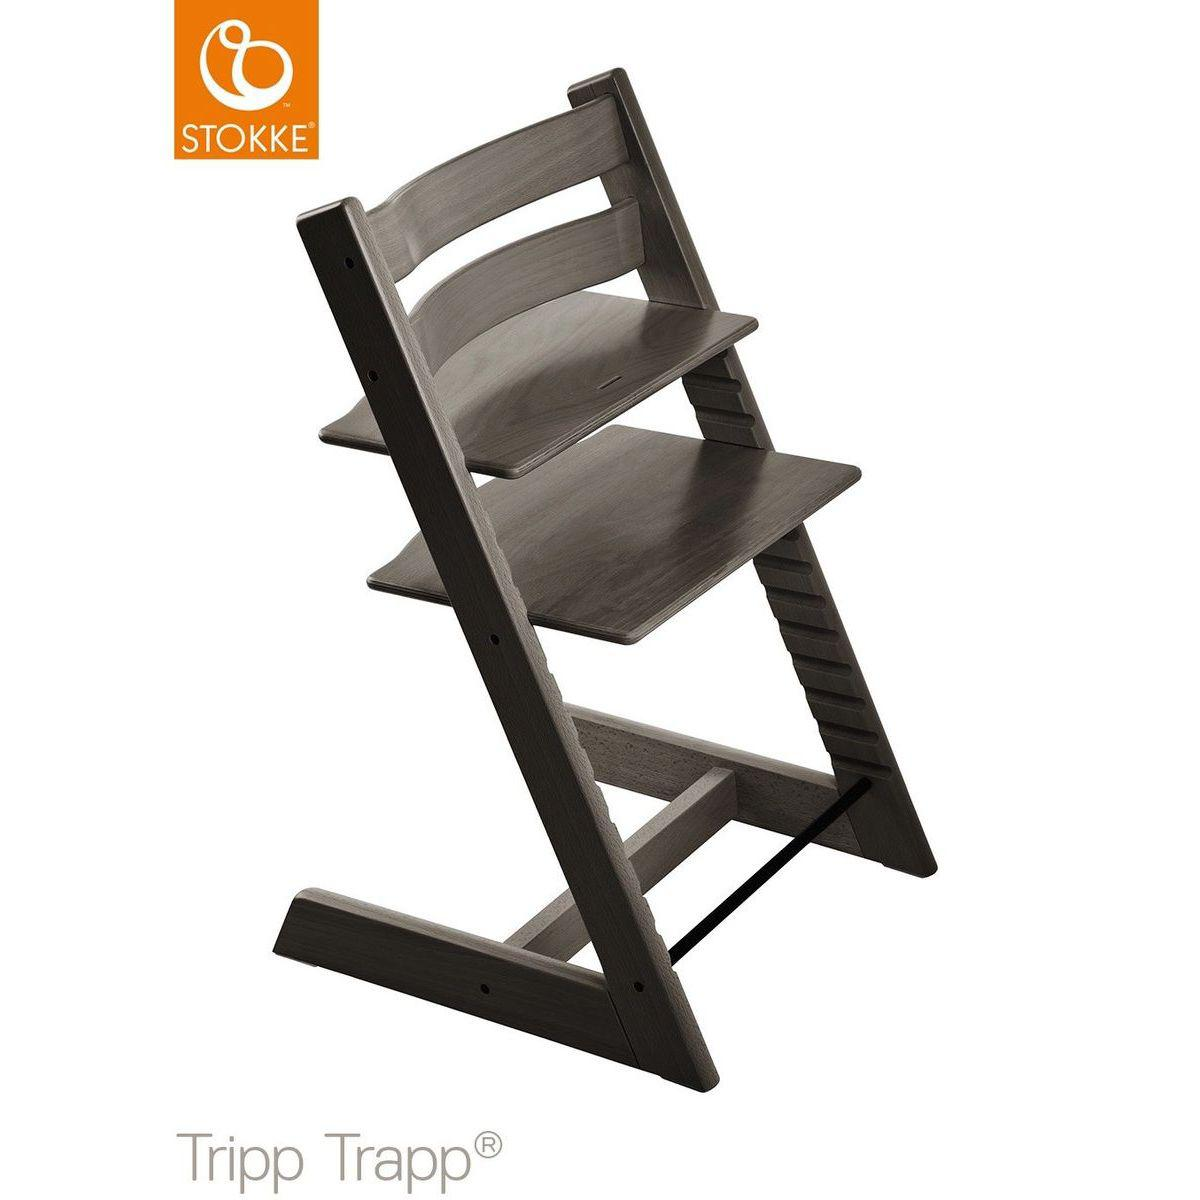 Chaise haute TRIPP TRAPP Stokke gris brume